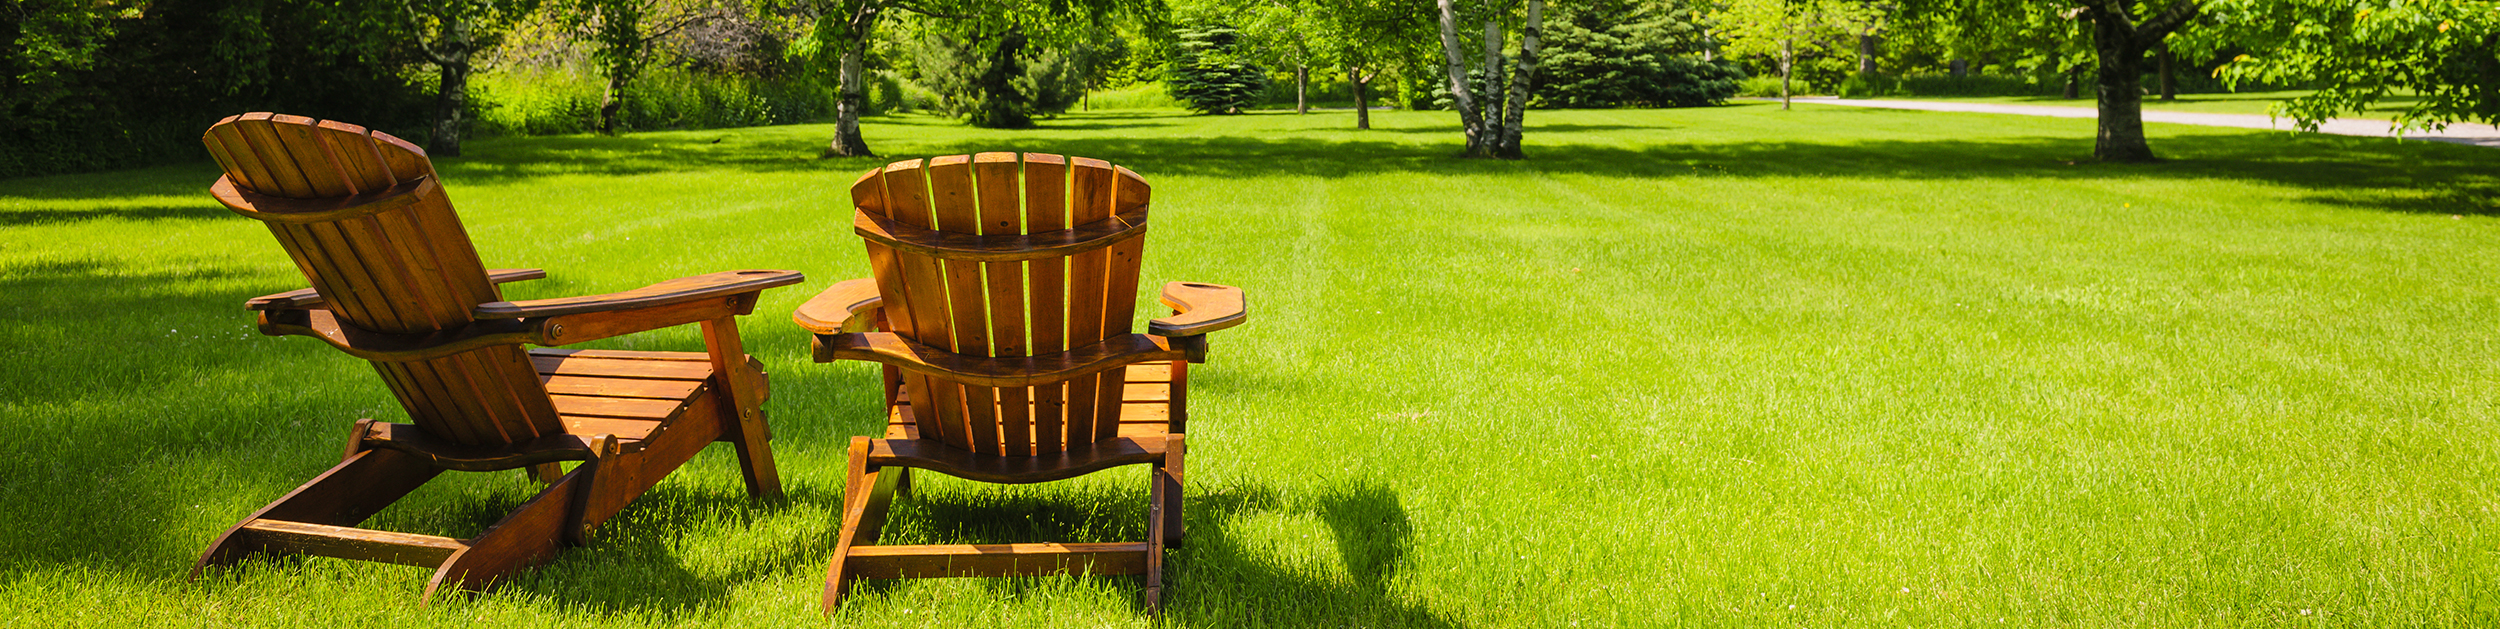 view of two Adirondack chairs on a beautiful lawn